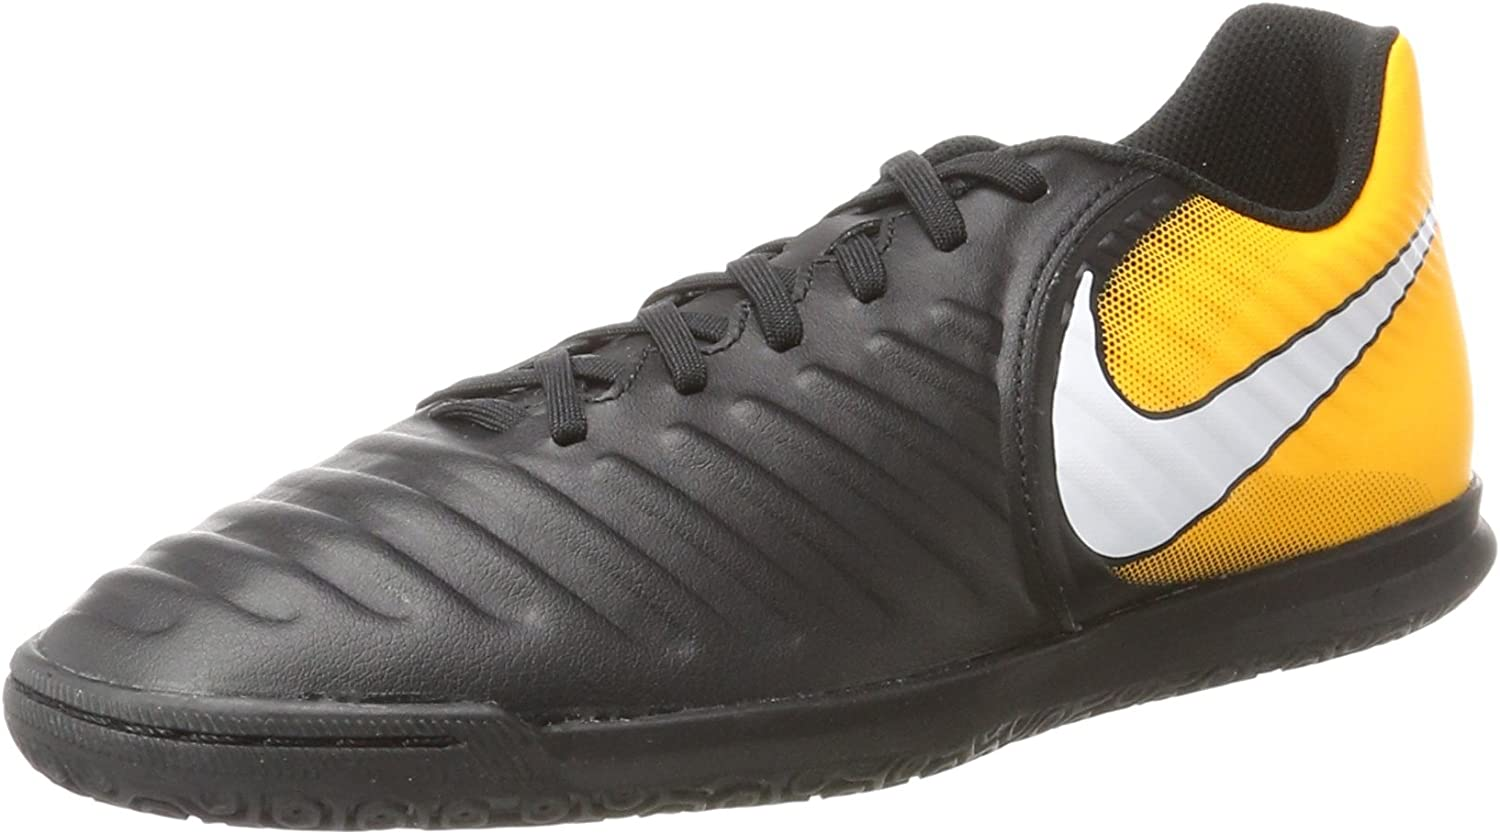 Mansedumbre Parecer Ganar control  Nike - Tiempox Rio IV IC - 897769008: Amazon.ca: Shoes & Handbags